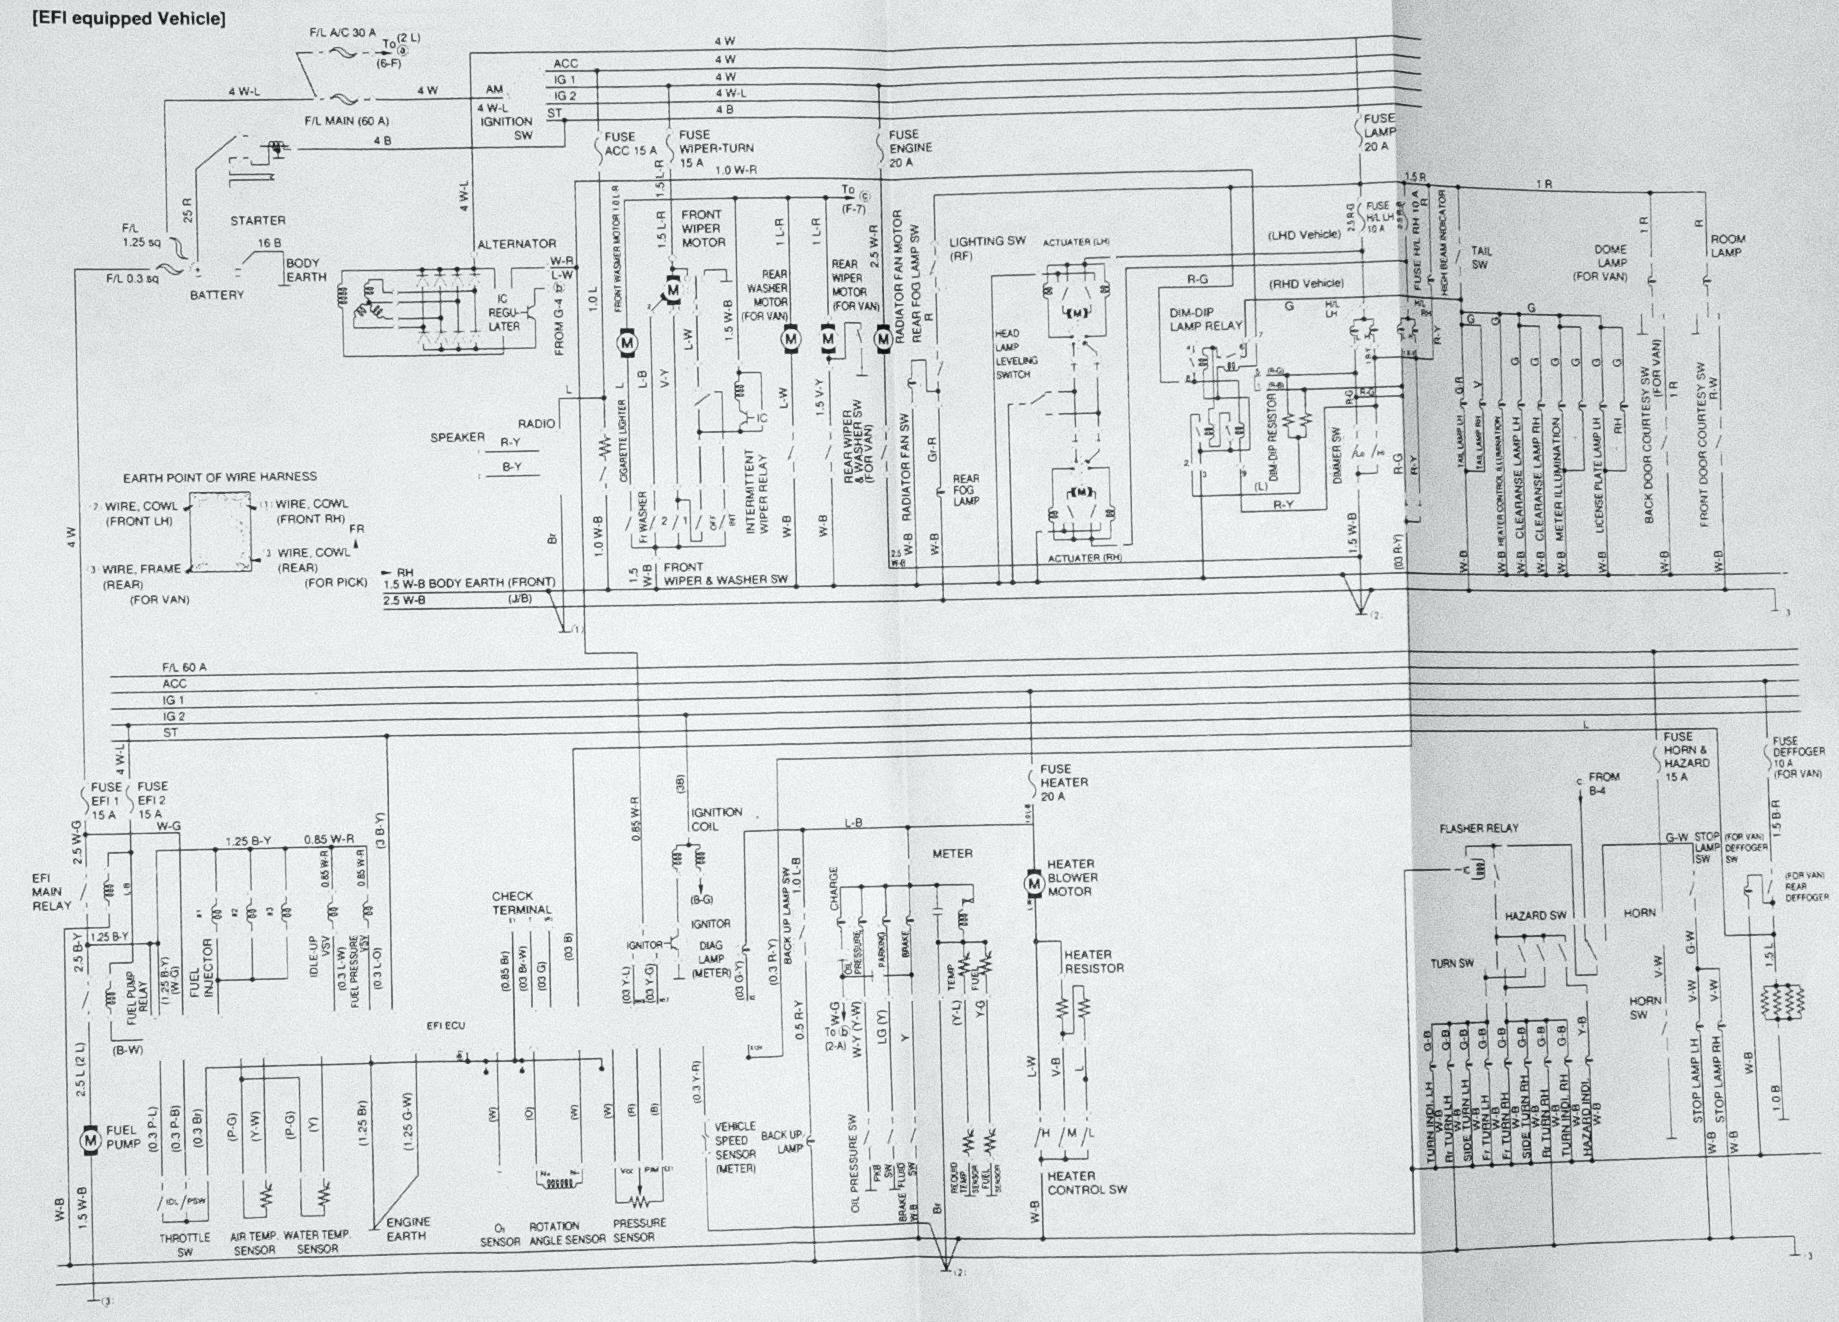 Daihatsu Hijet Engine Diagram Daihatsu Sirion Electrical Diagram Wiring Diagram • Of Daihatsu Hijet Engine Diagram